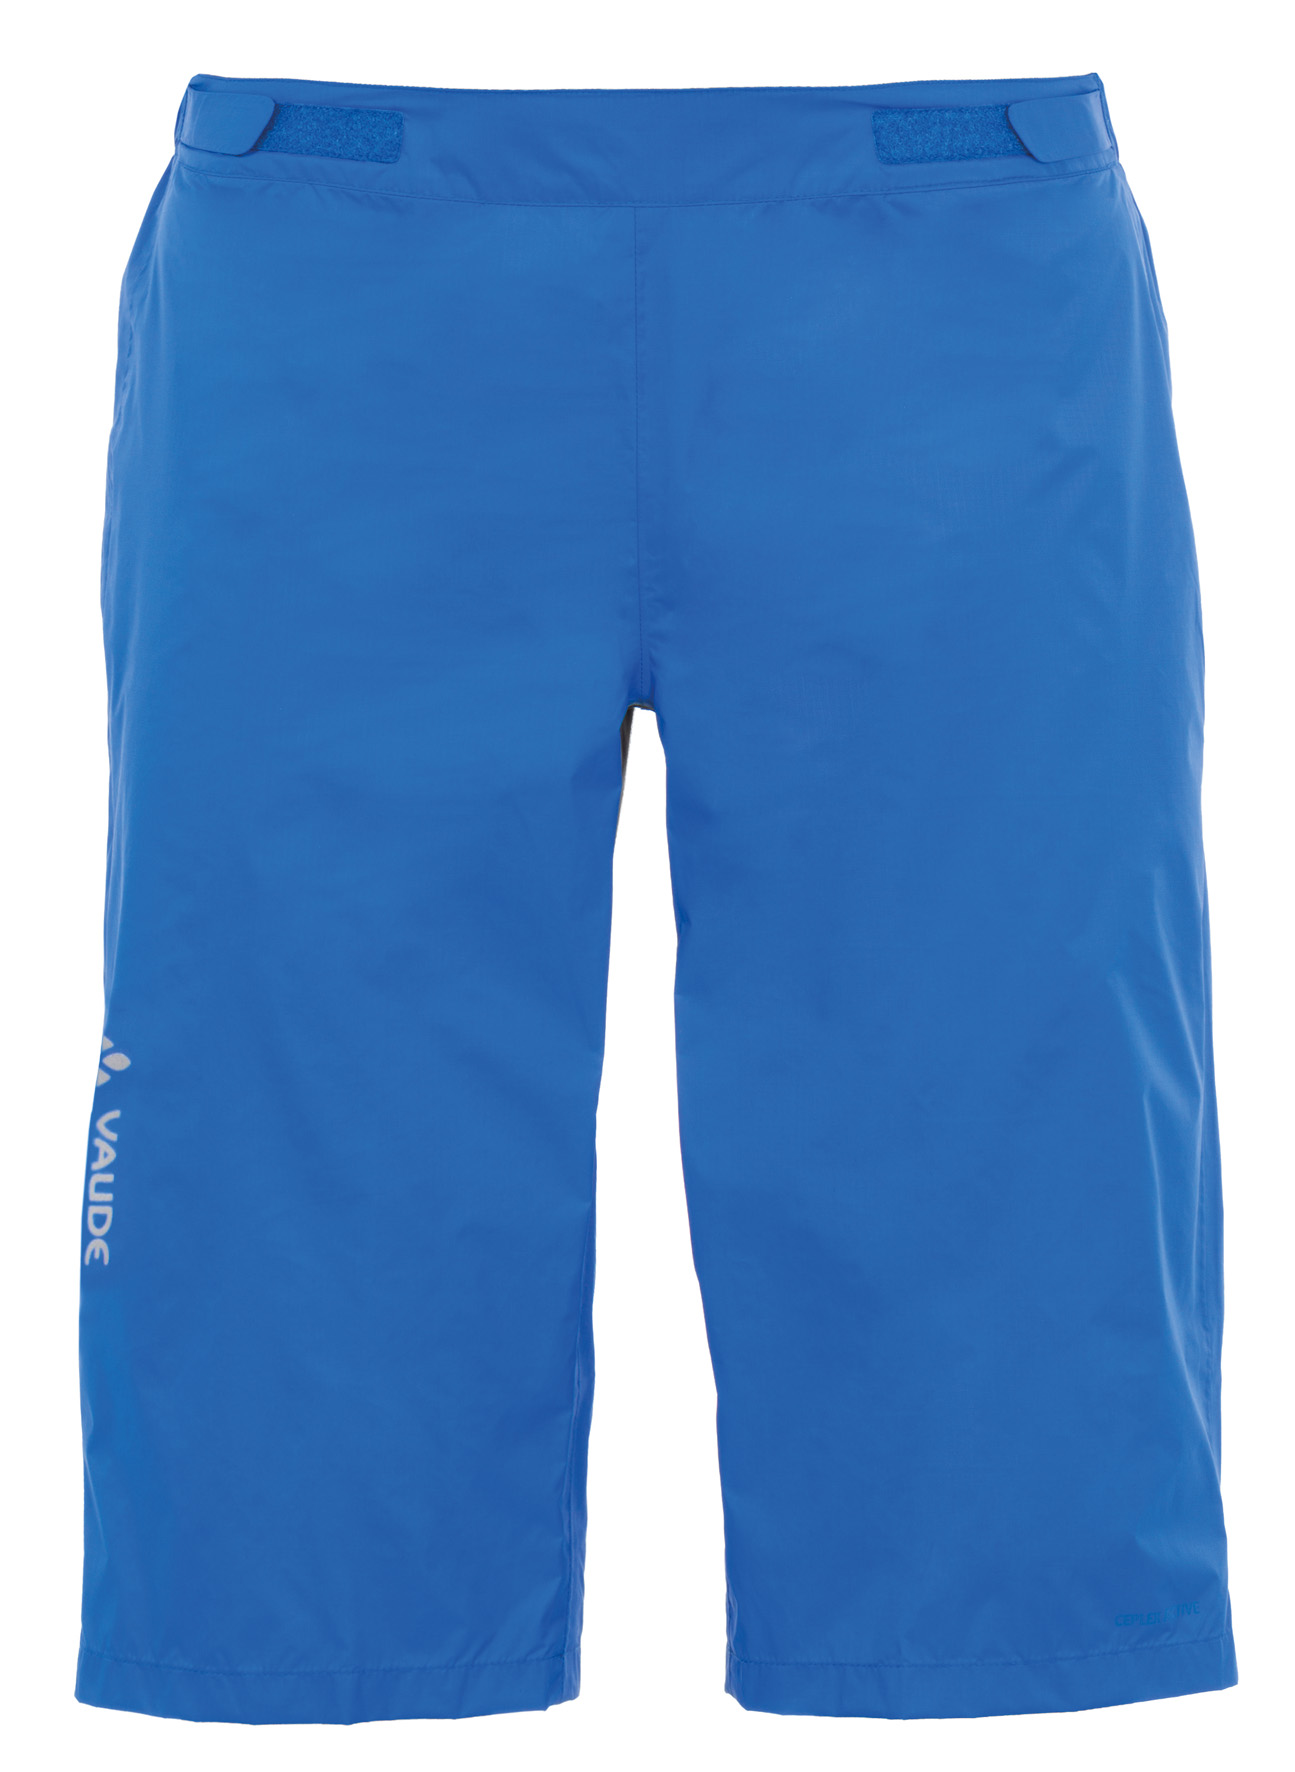 VAUDE Men´s Tremalzo Rain Shorts hydro blue Größe L - schneider-sports